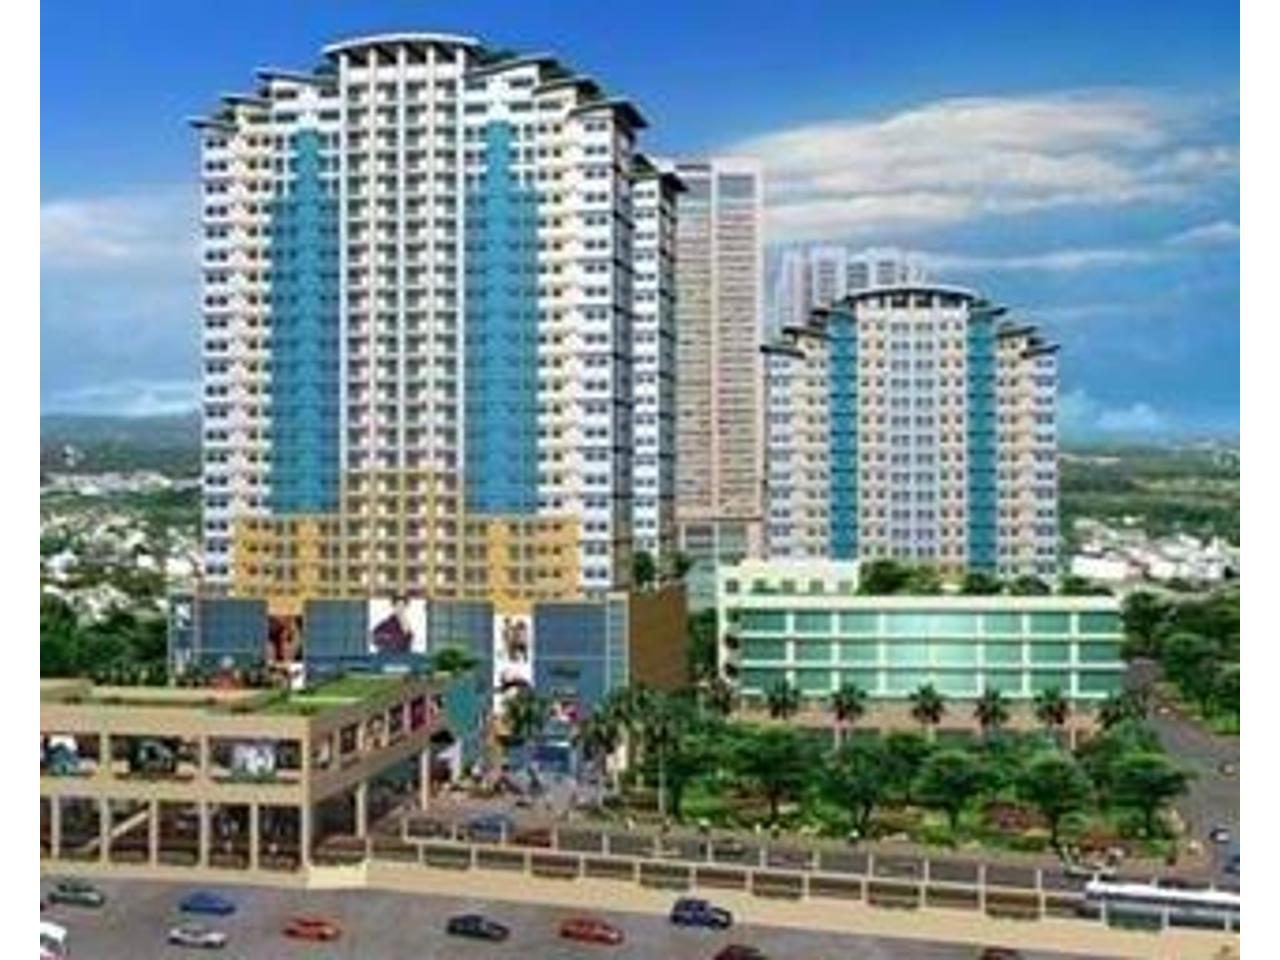 Condominium For Sale in Boni Mrt Station, Mandaluyong, Ncr